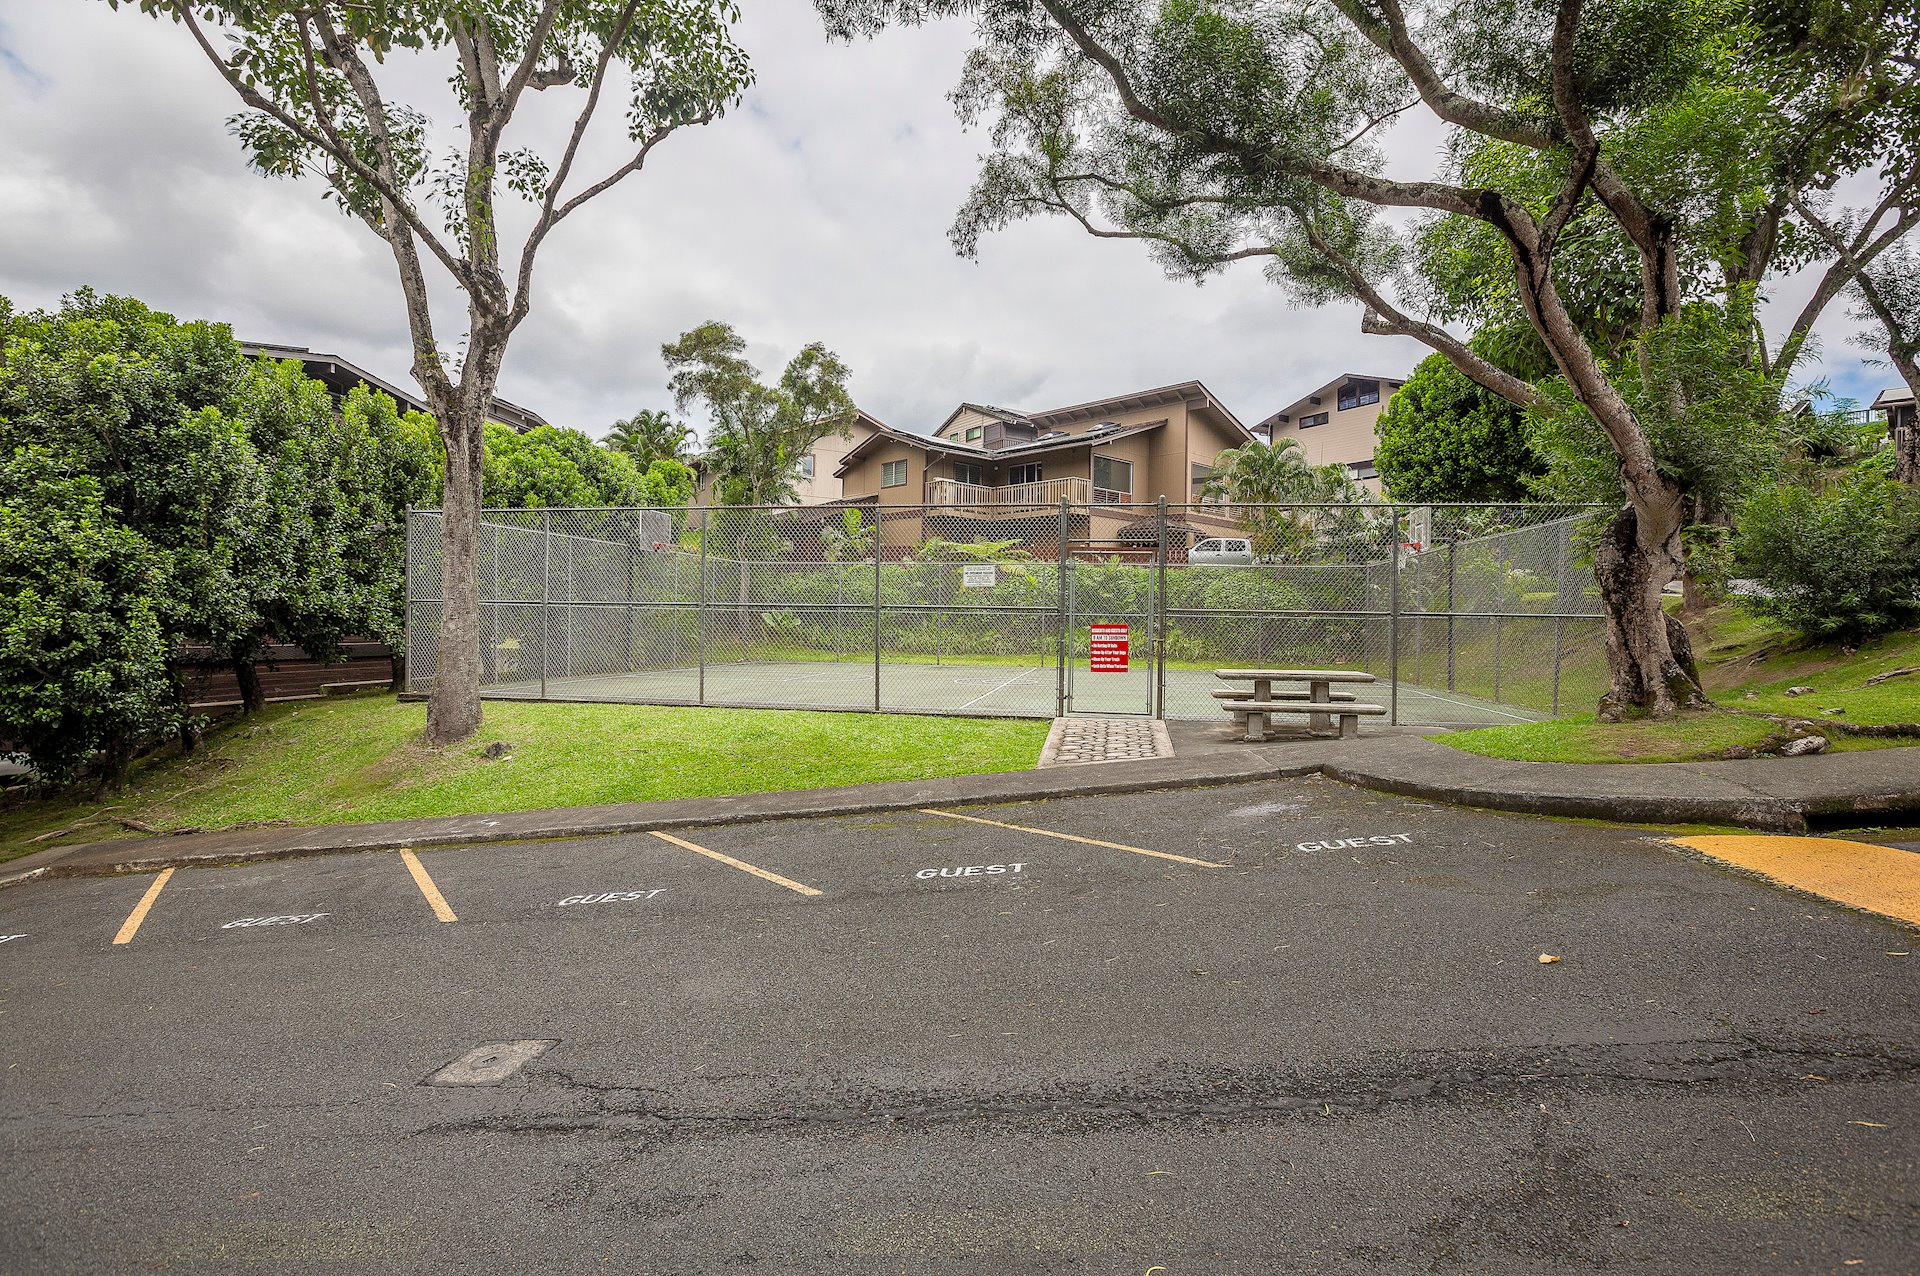 Common area, basketball court & picnic table to the Kaneohe Woods neighborhood community.  There are 10 guest parking stalls.